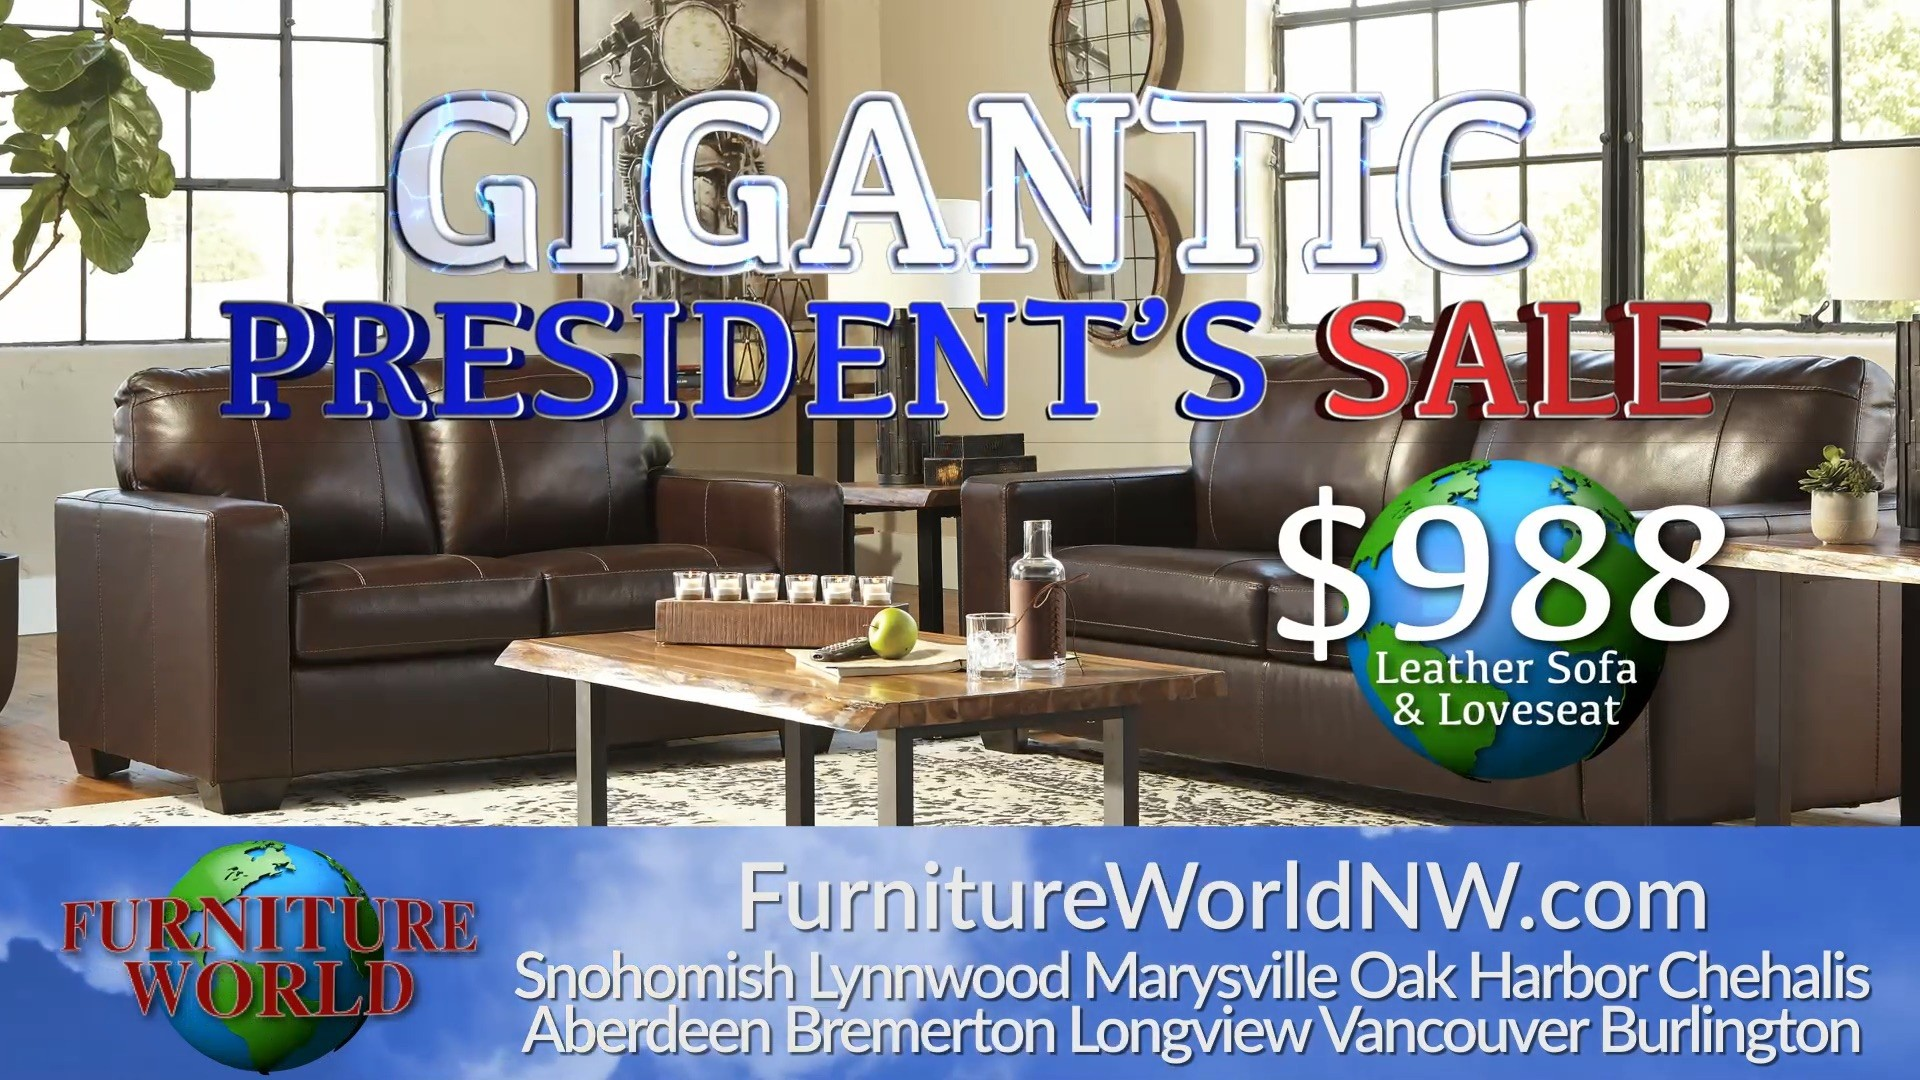 Furniture World: President's Sale